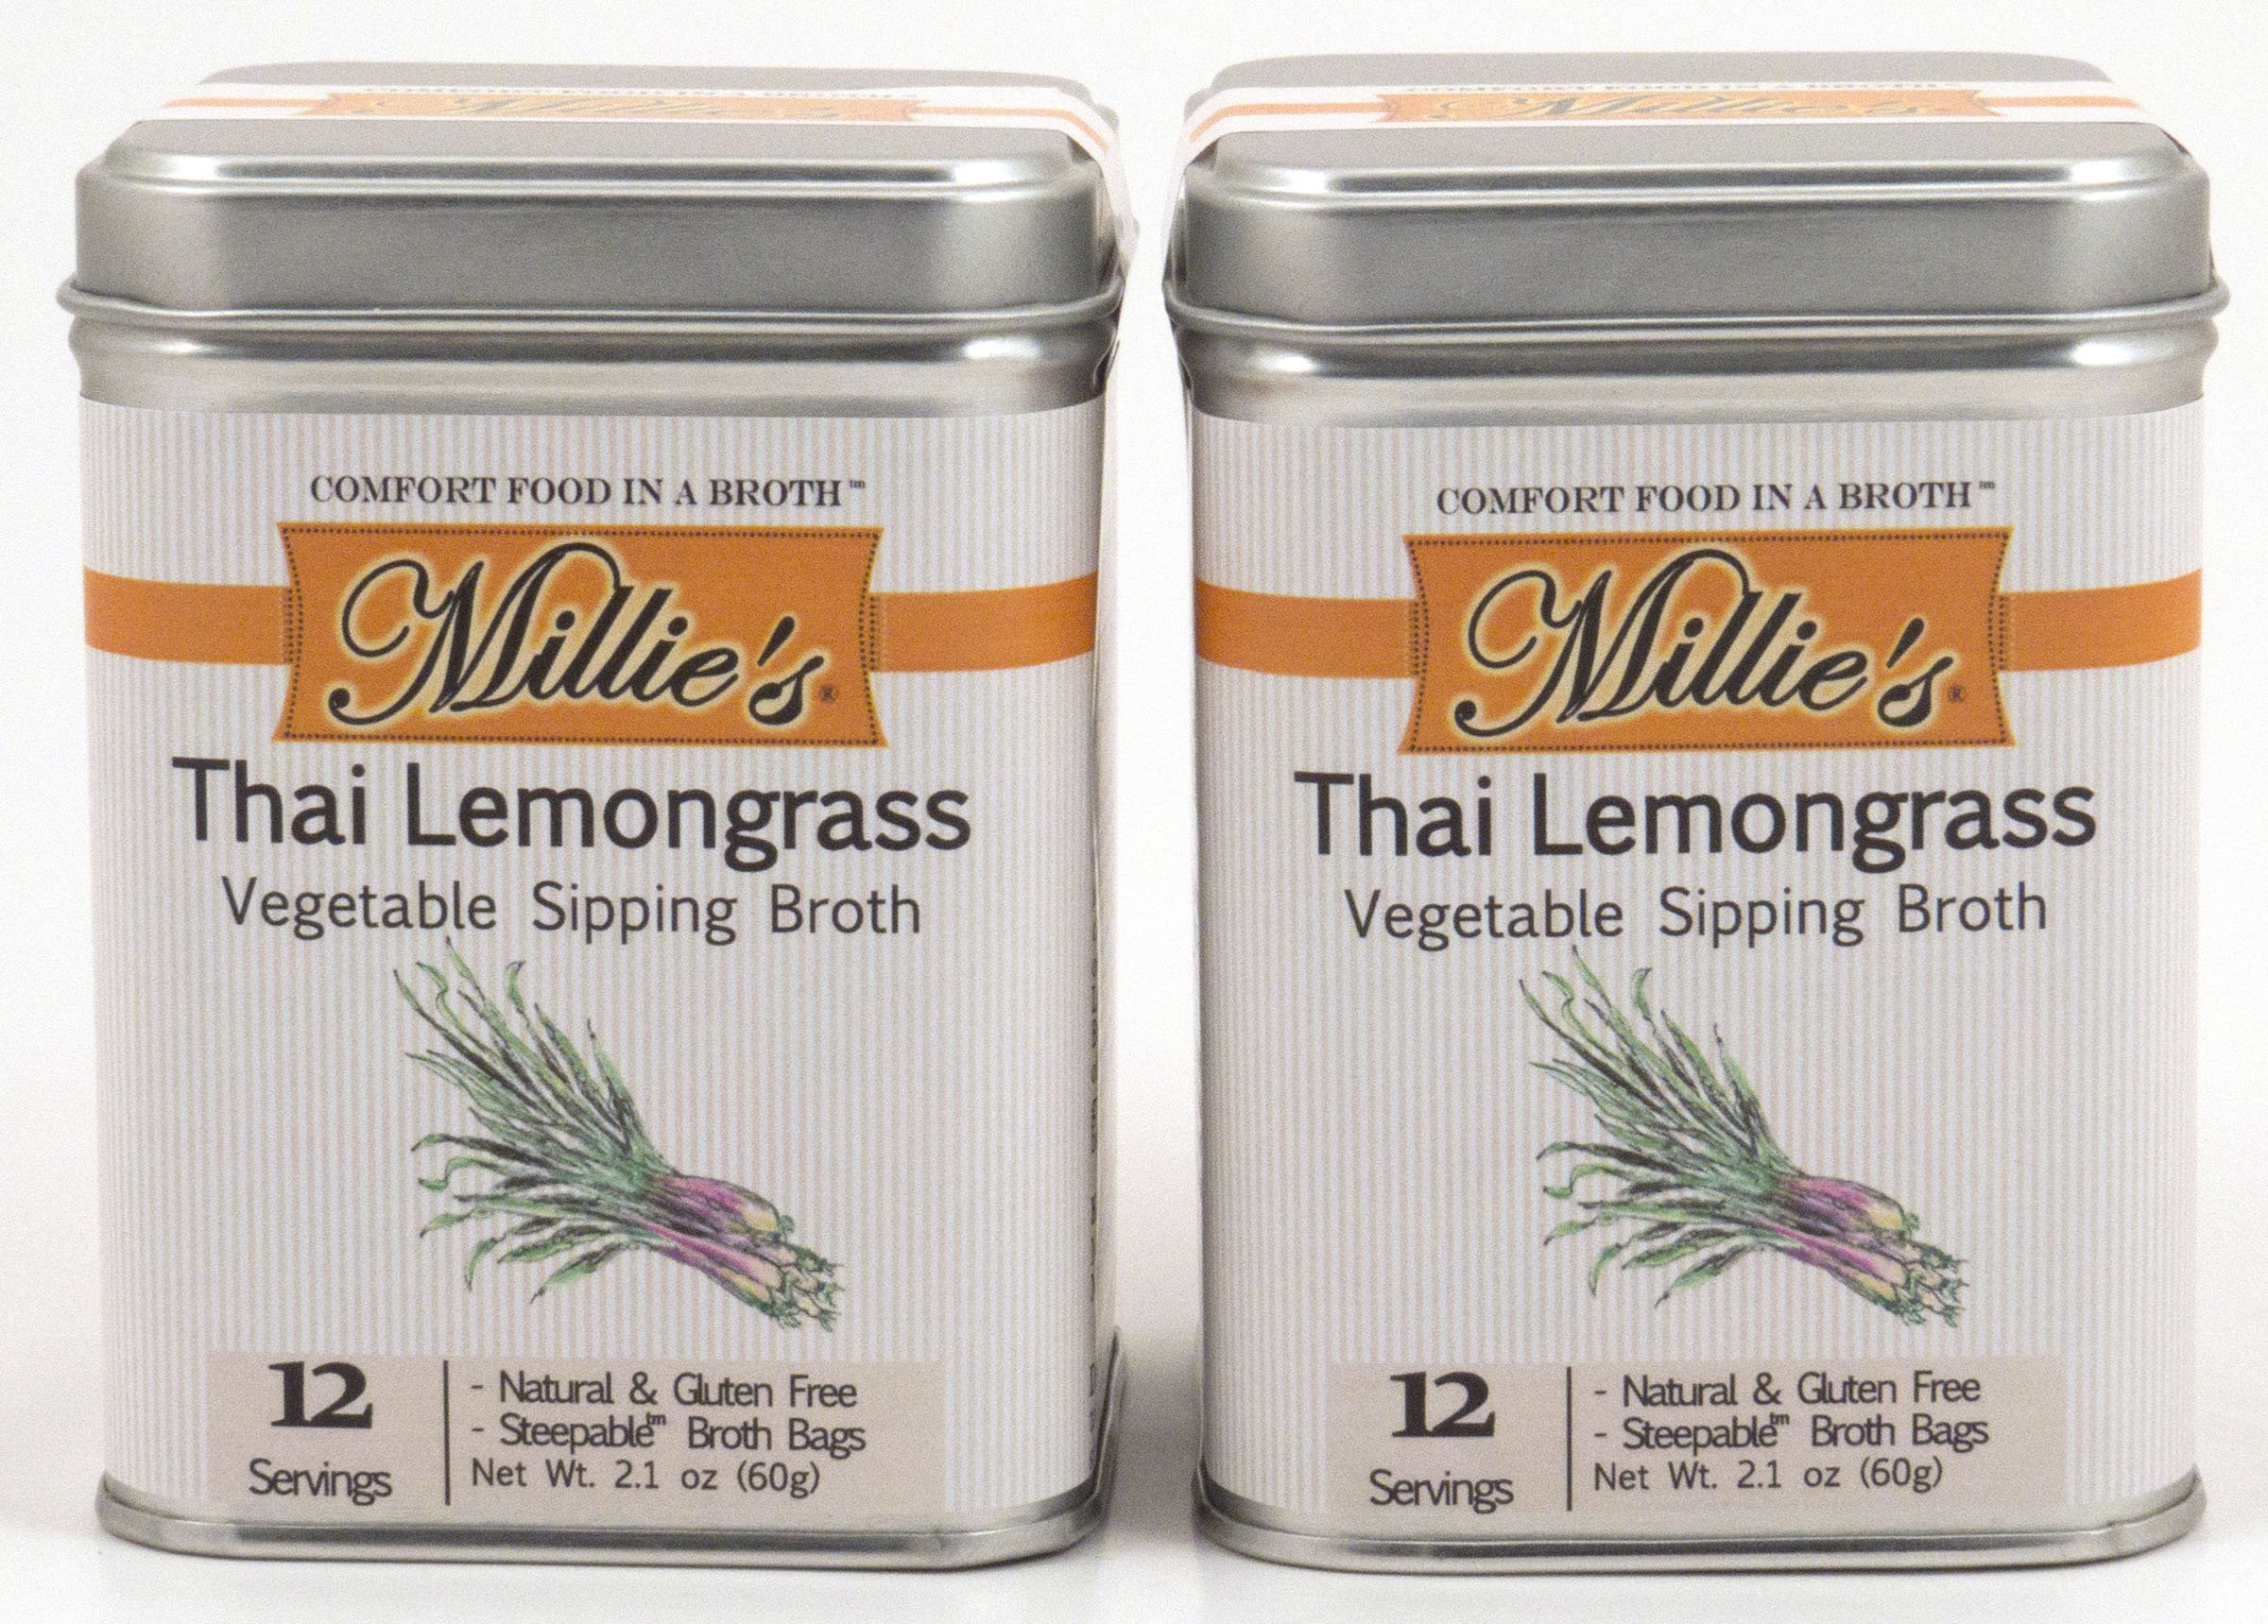 Millie's All Natural Organic Gluten-Free Vegetable Sipping Broth 12 Tea Bags each Thai Lemongrass (2-Pack)